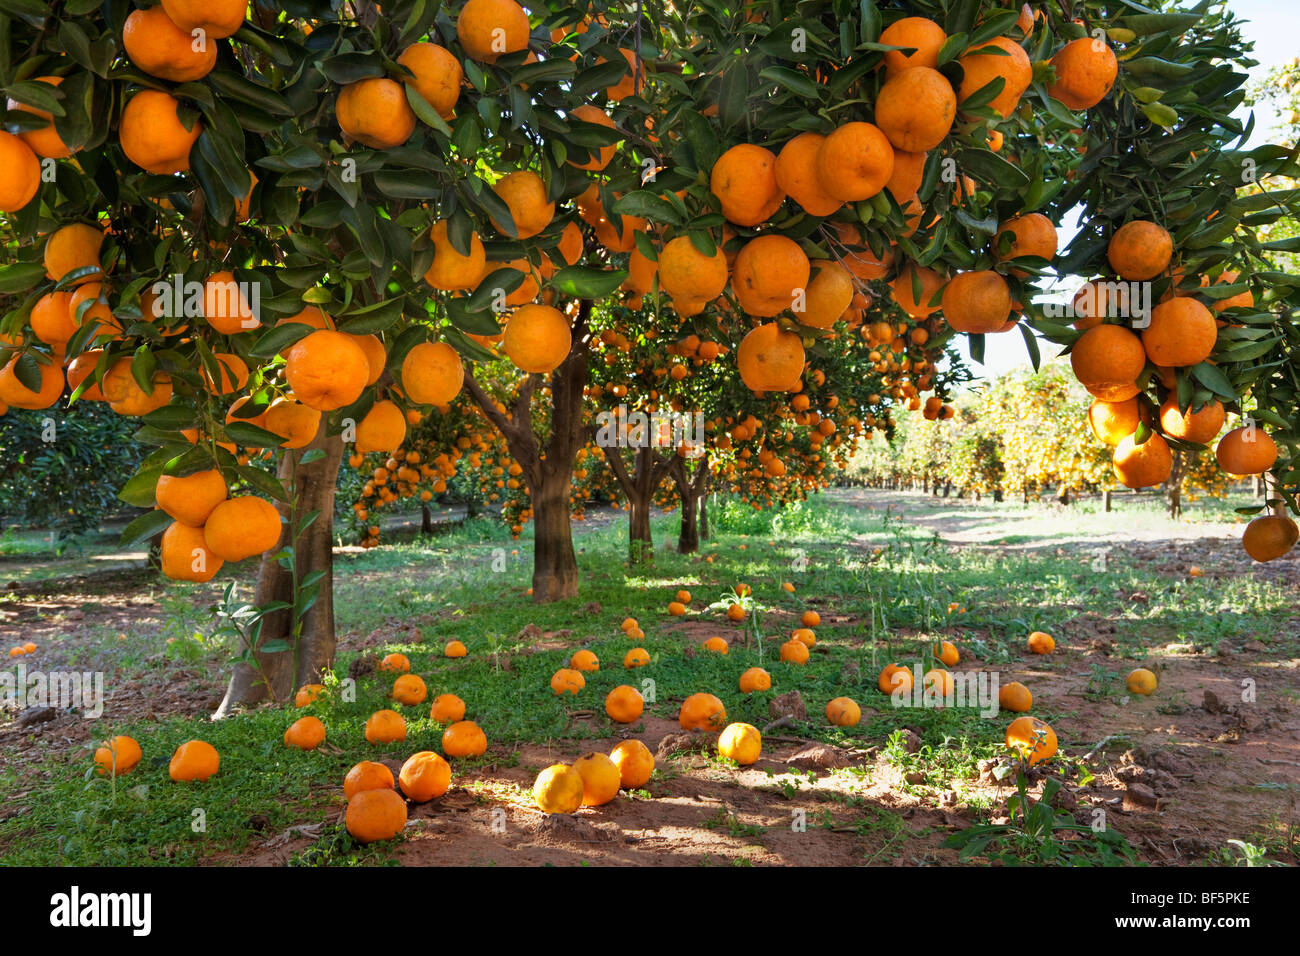 Falling Leaves Live Wallpaper Download Orange Laden Fruit Trees In An Orchard Stock Photo